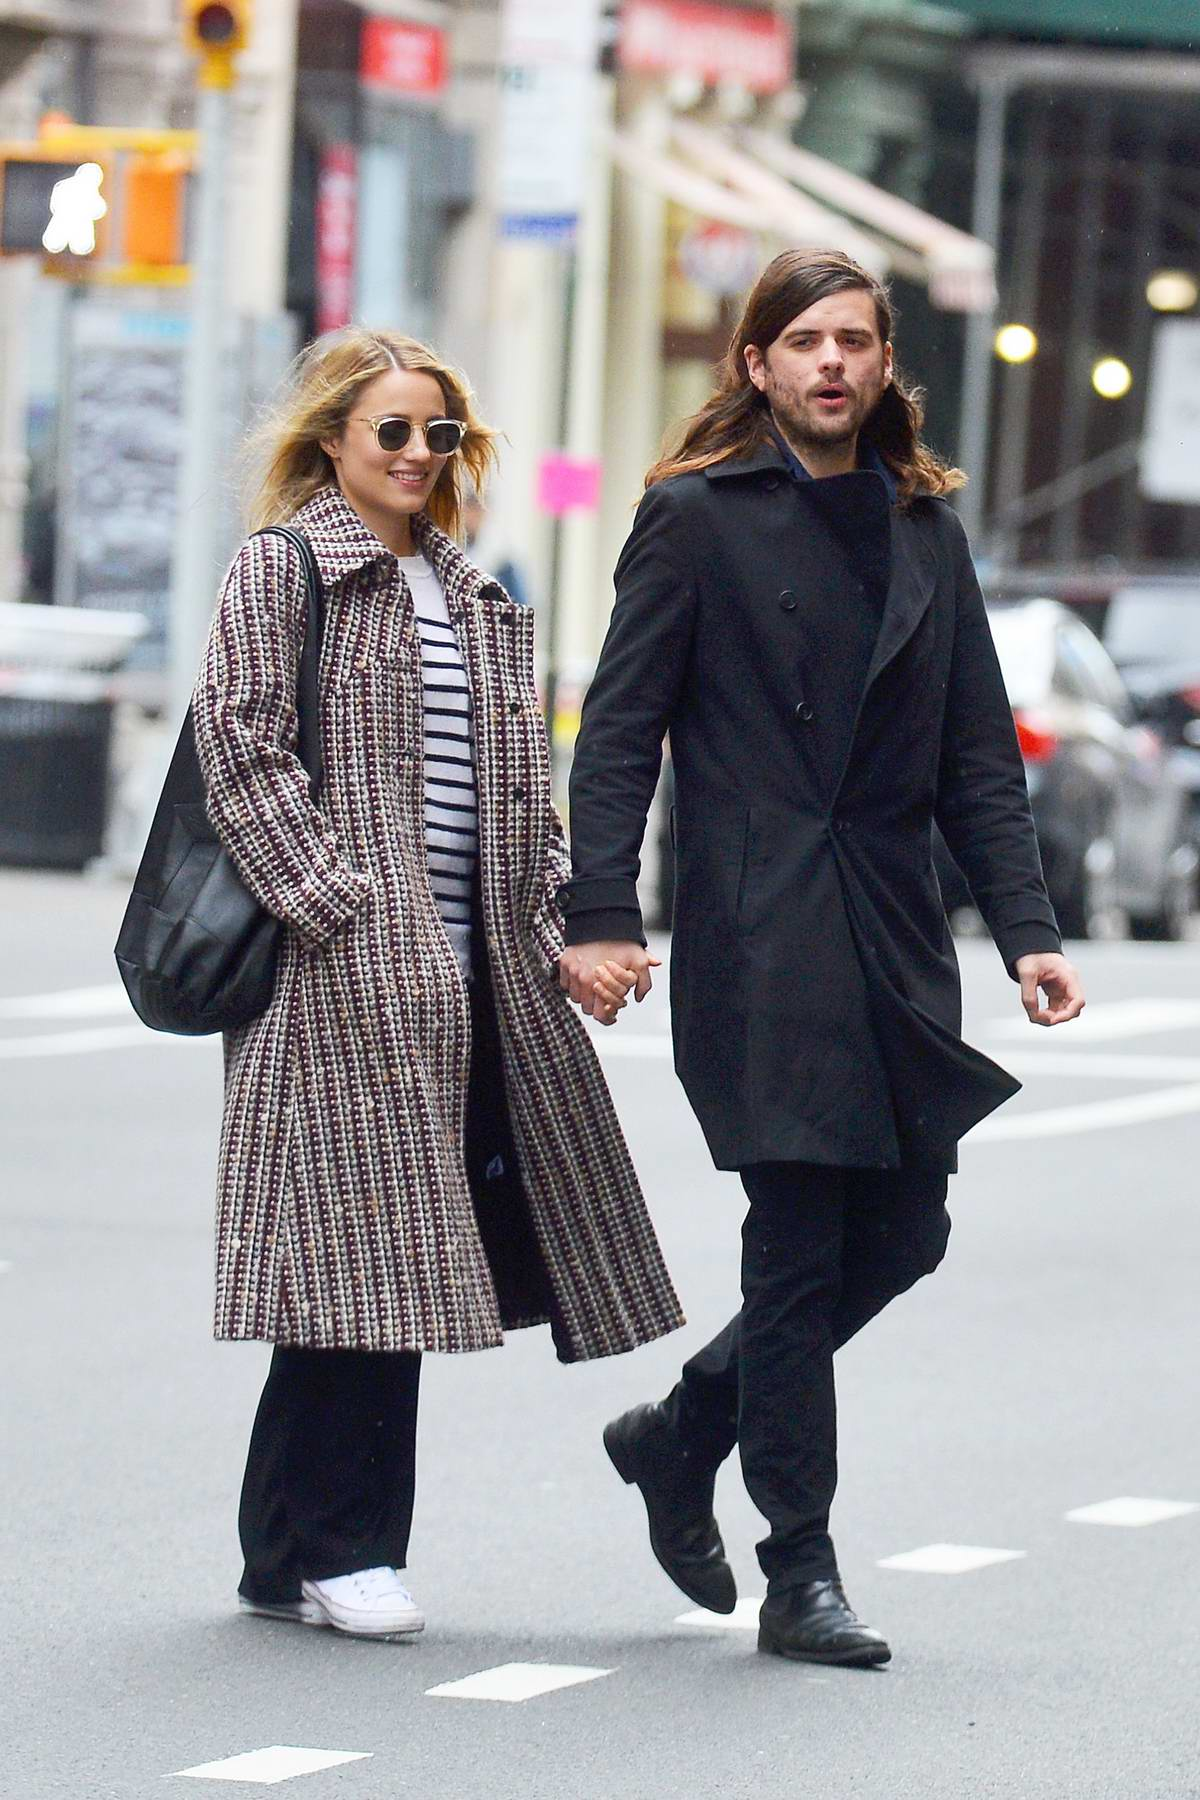 Dianna Agron and Winston Marshall are spotted on a stroll in New York City